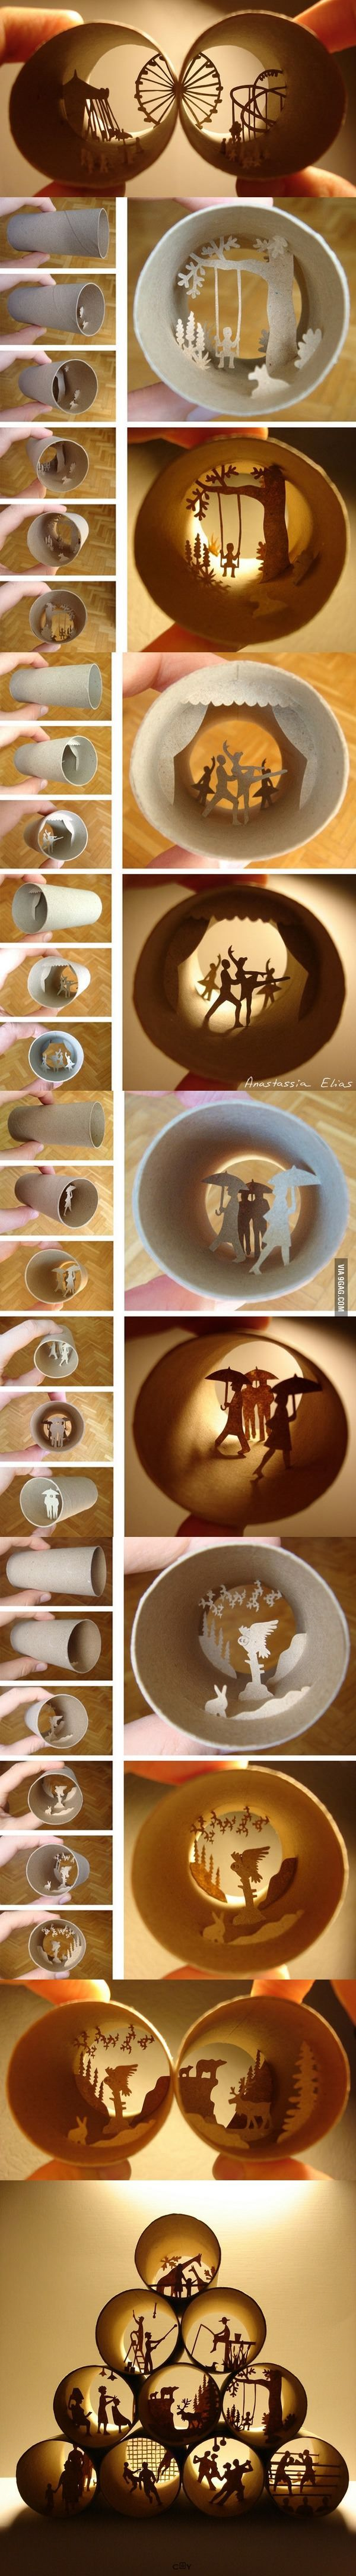 Toilet paper roll art by Anastassia Elias.. Marvellous!!                                                                                                                                                                                 More